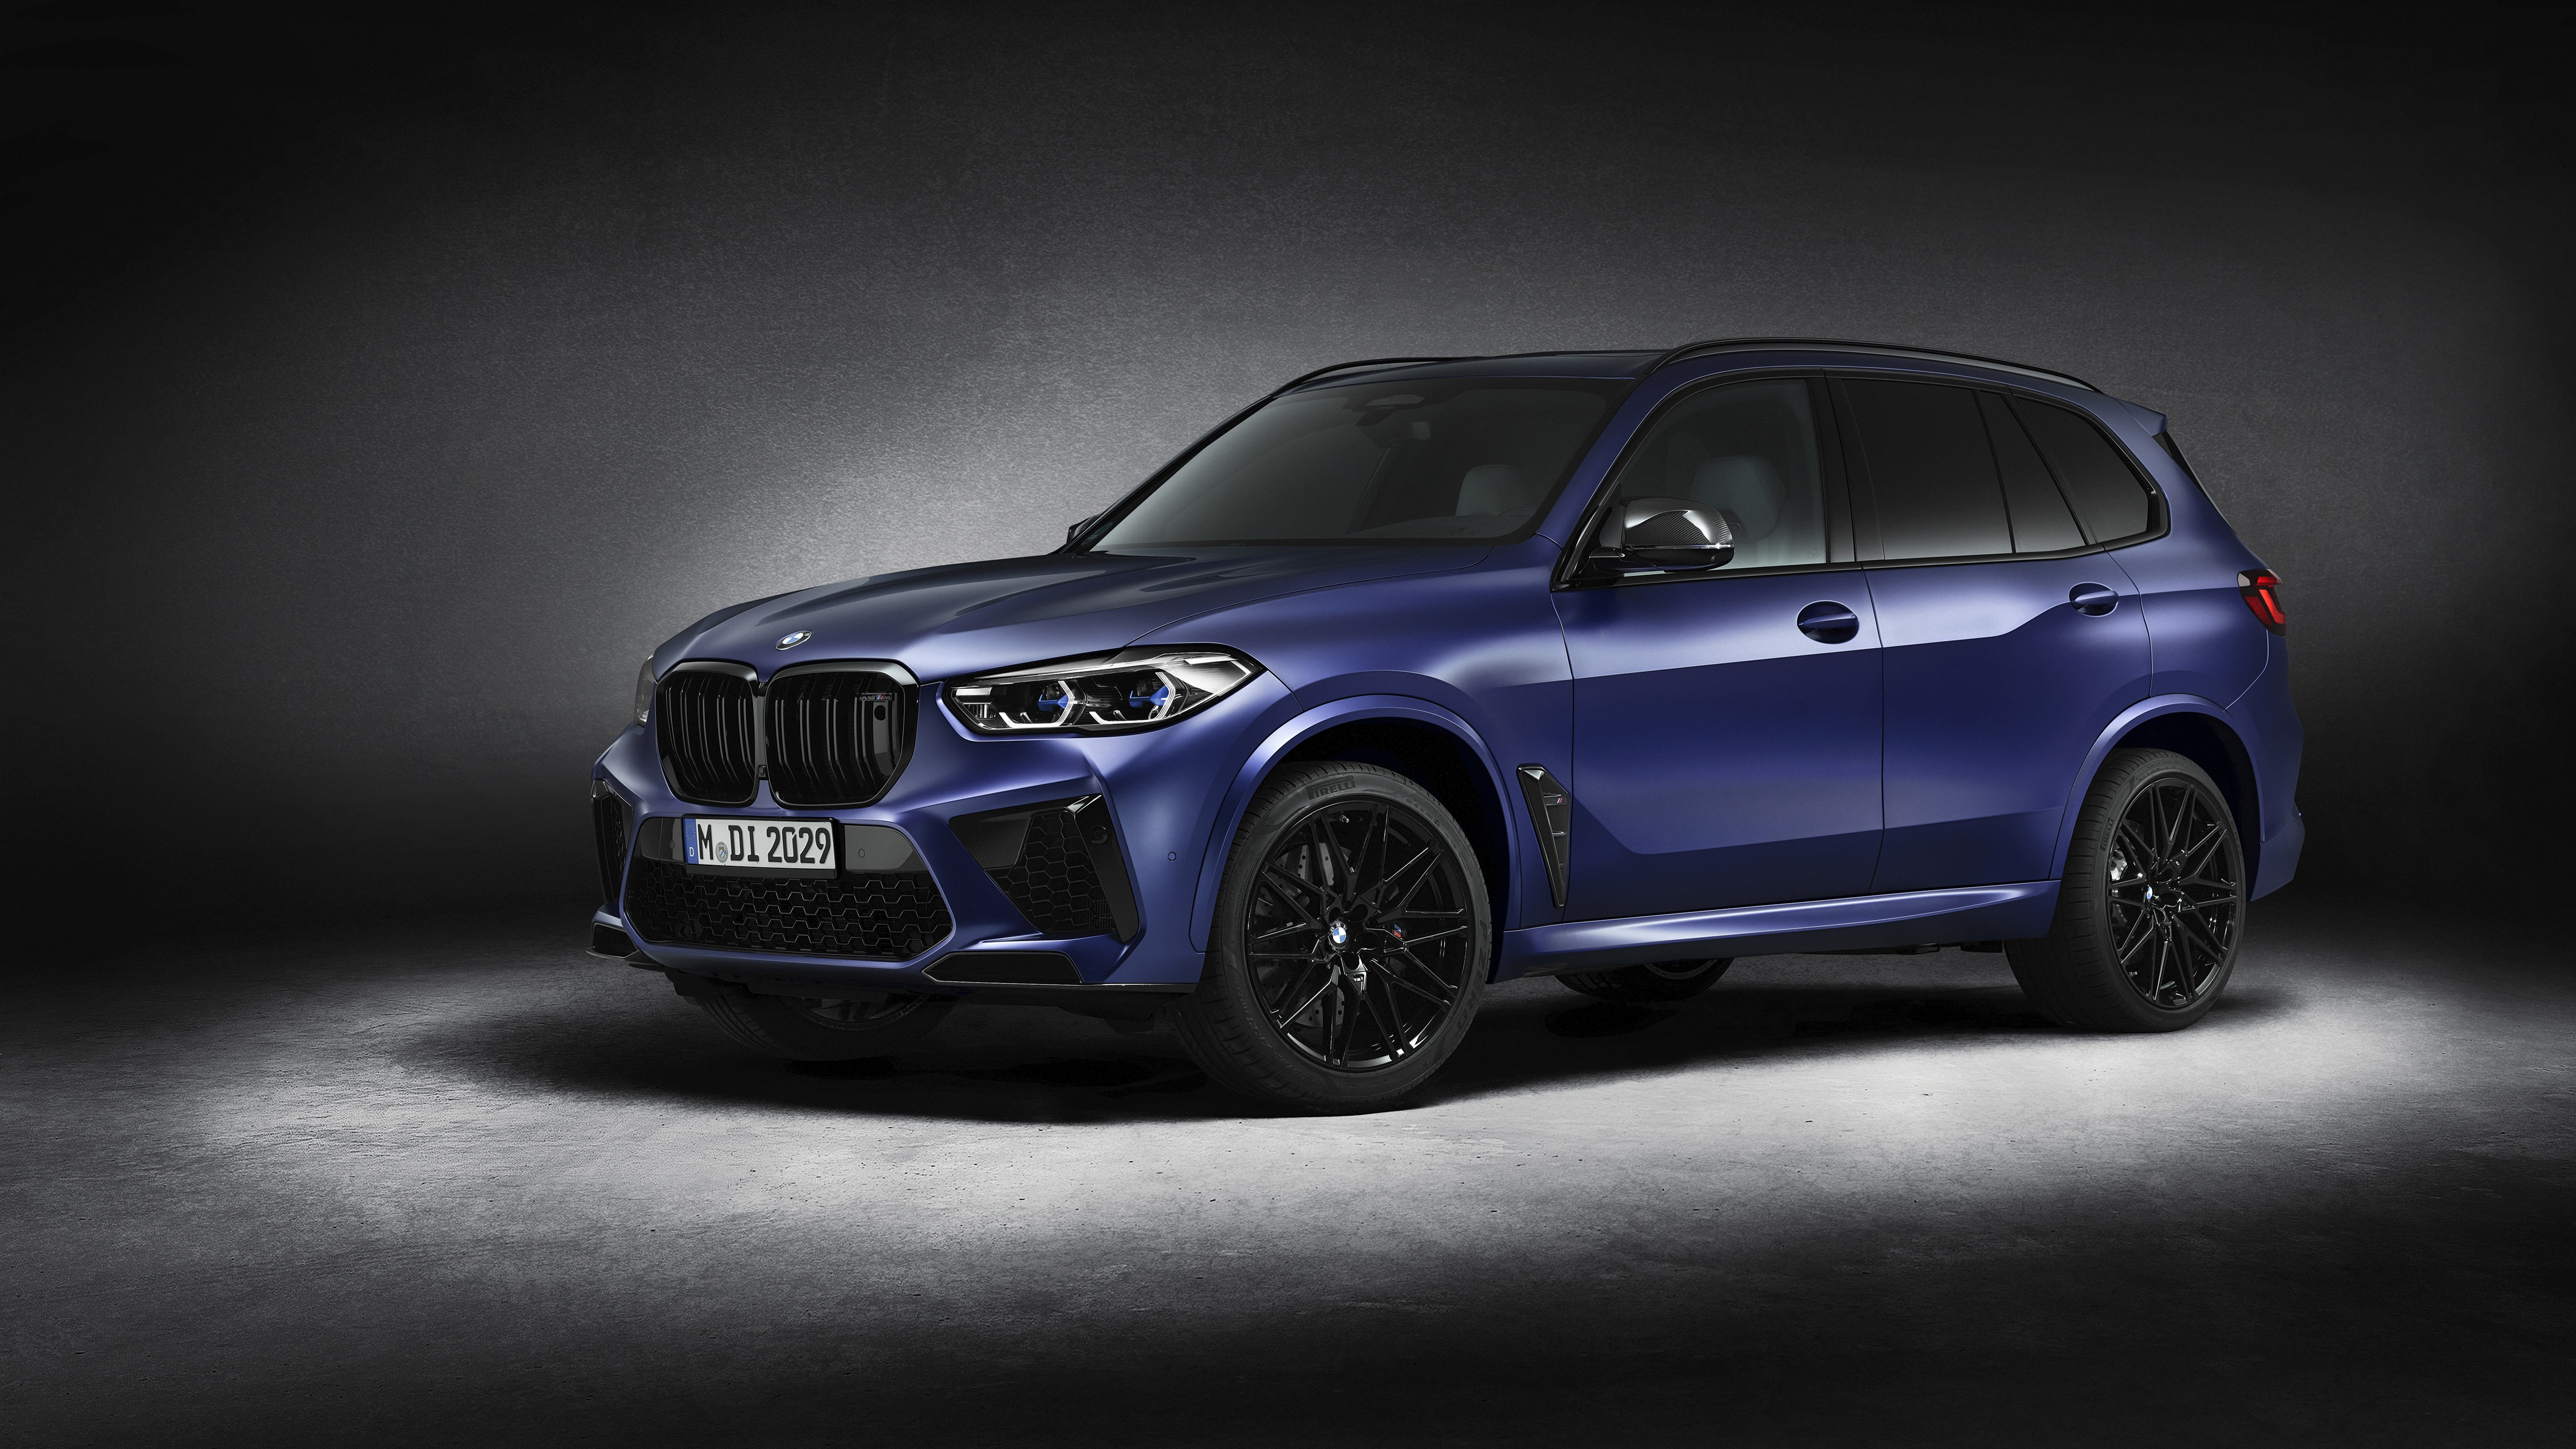 BMW X5 M Competition First Edition 2021 5K Wallpaper   HD ...